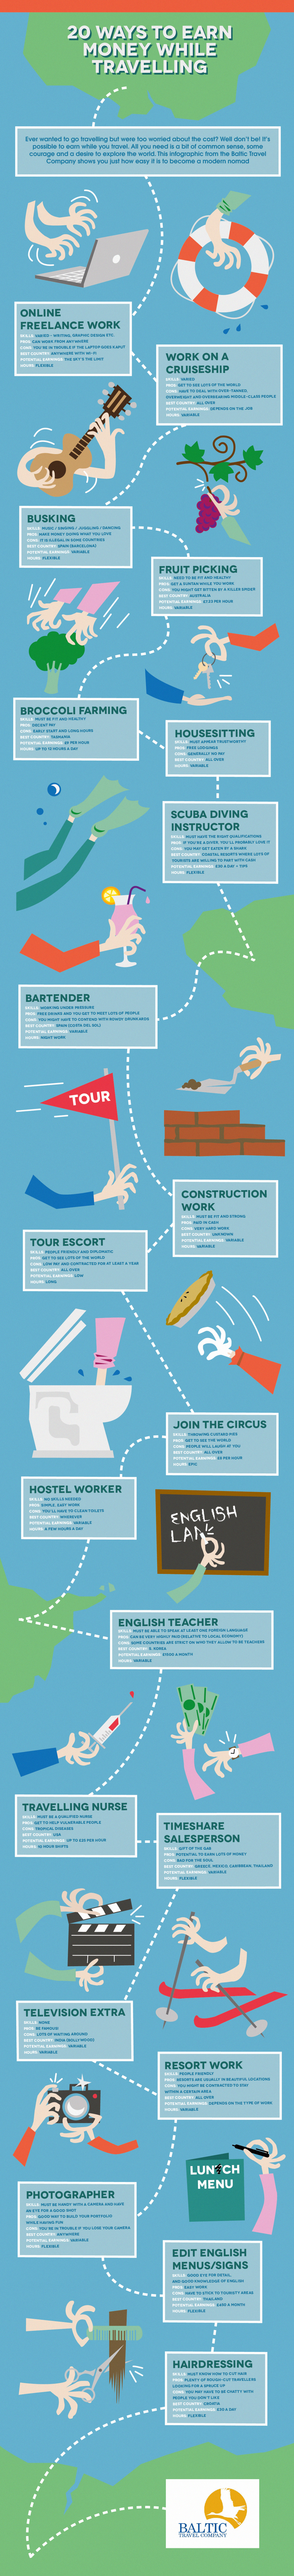 How to Make Money When You're Travelling Infographic